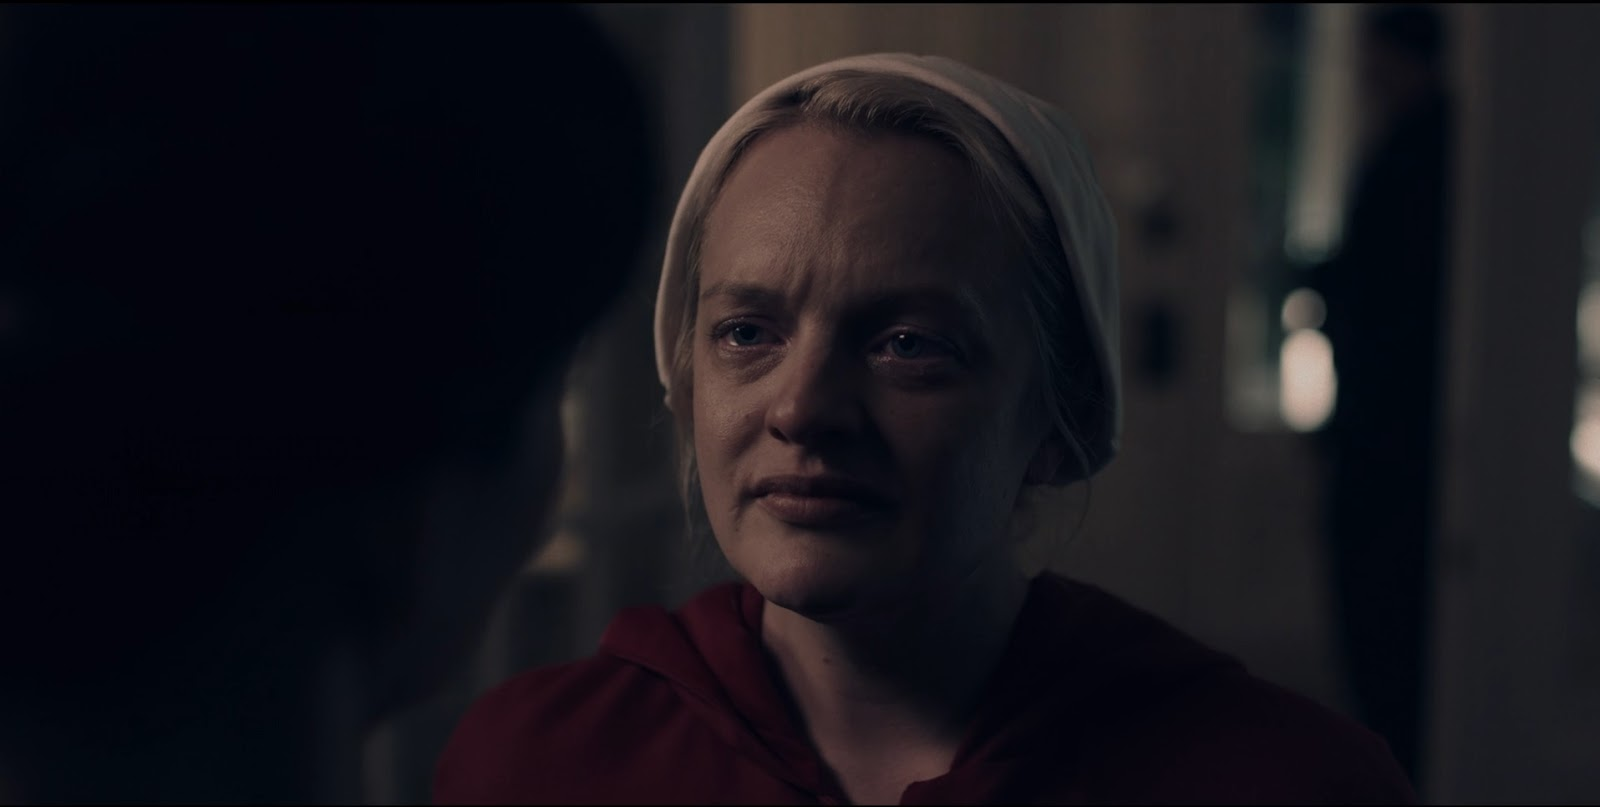 The Handmaid's Tale 3x01 - June